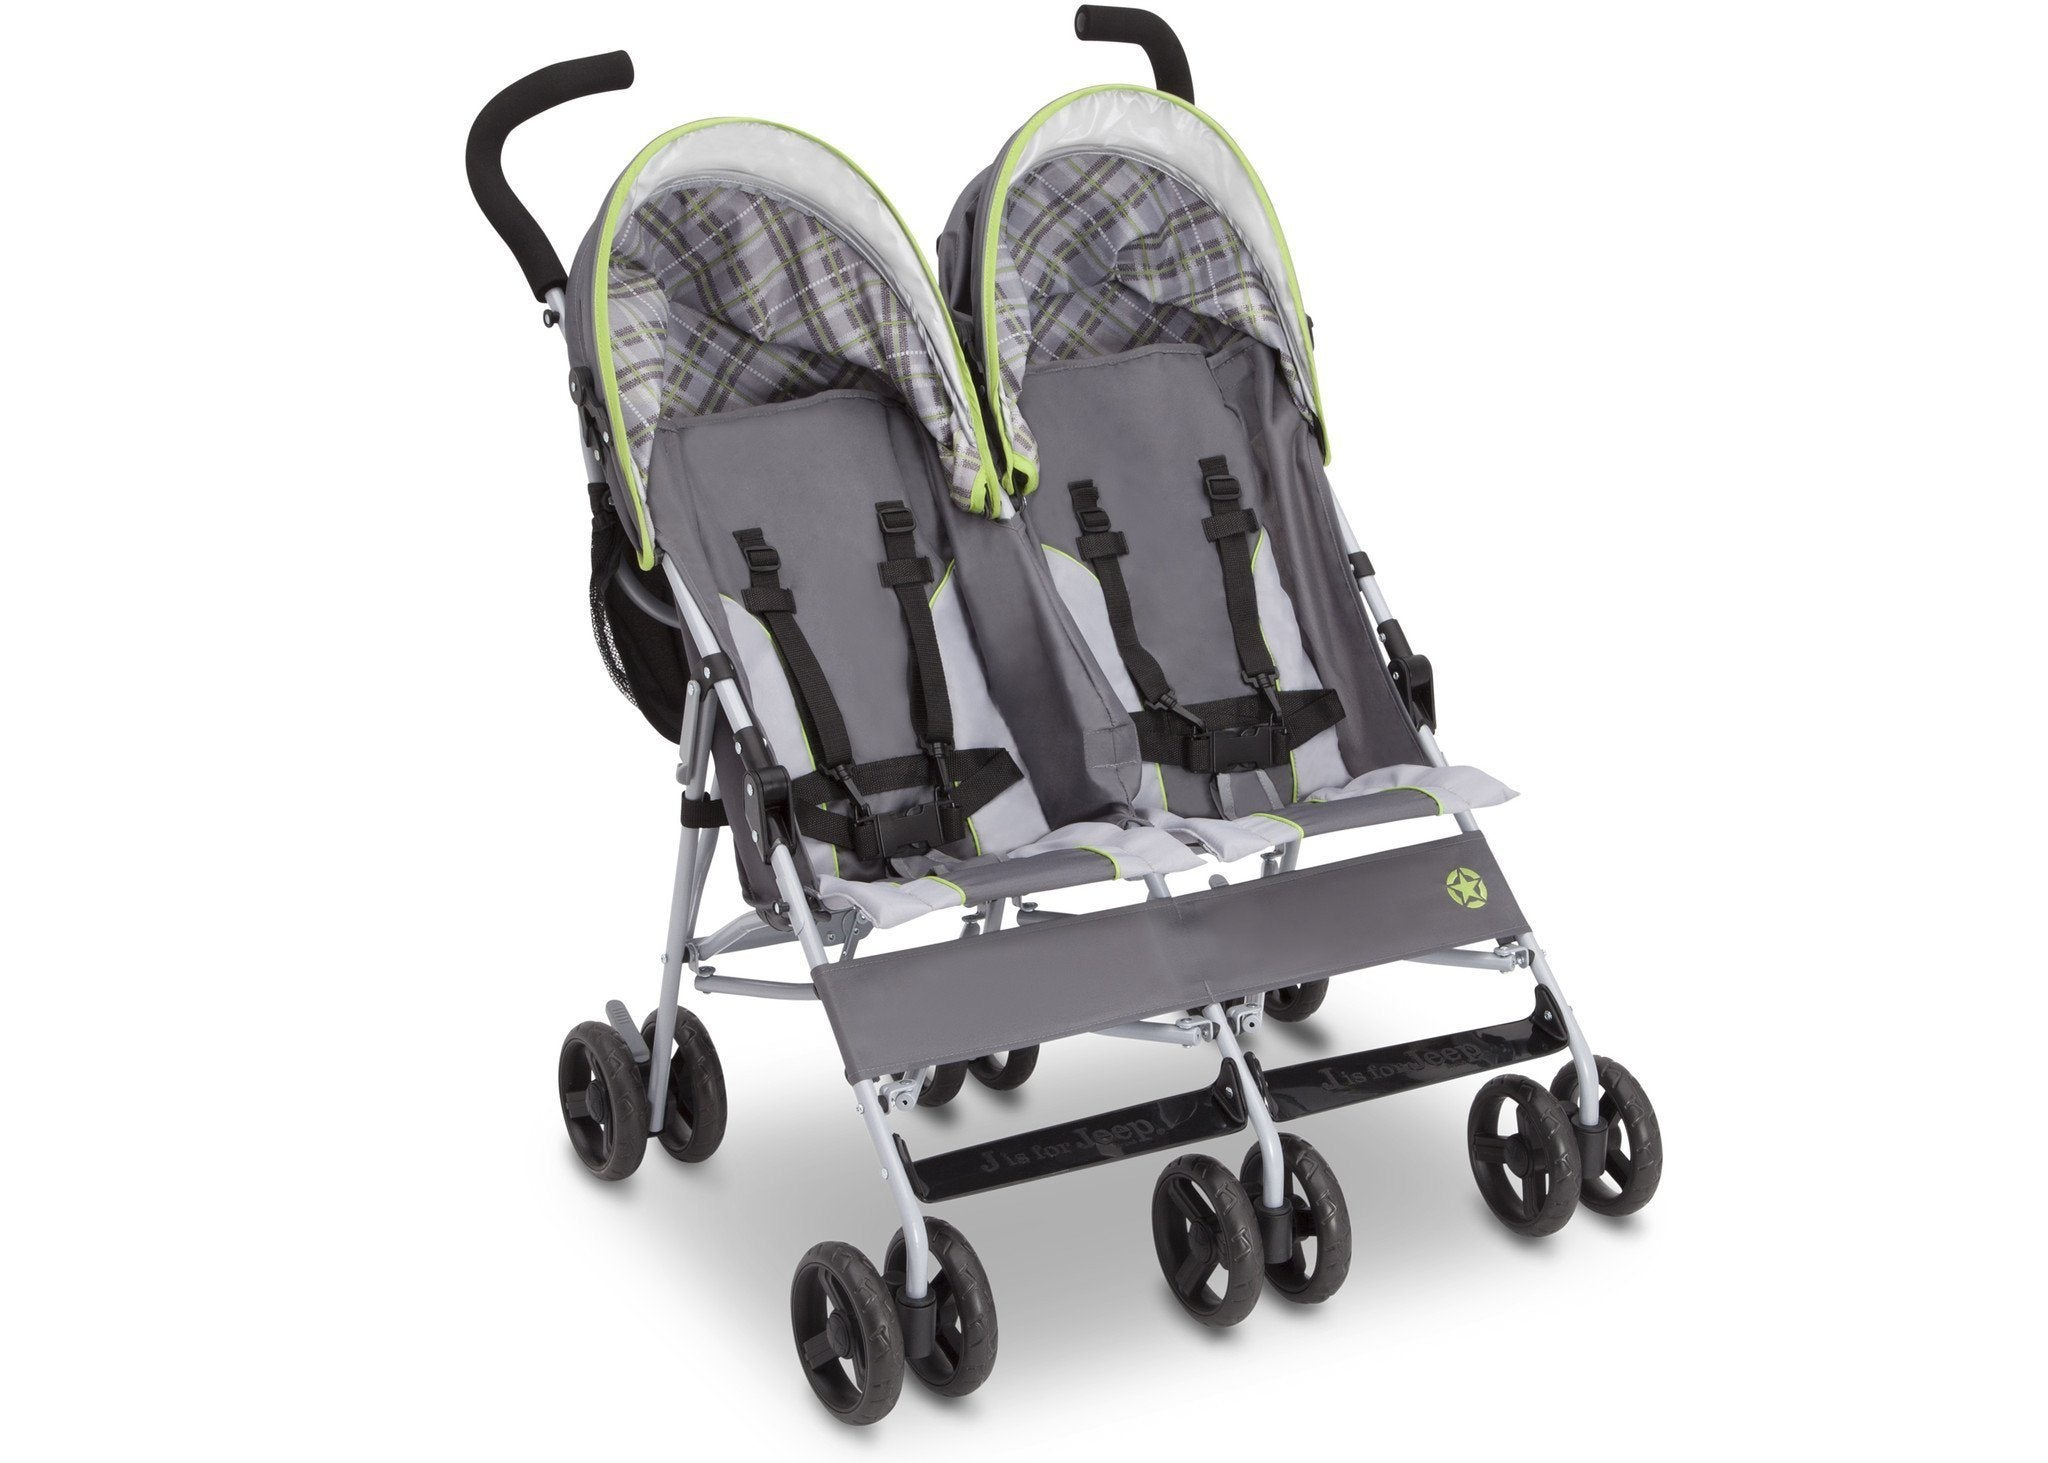 Jeep Brand Scout Double Stroller by Delta Children, Fairway (340), with multi-position reclining seat